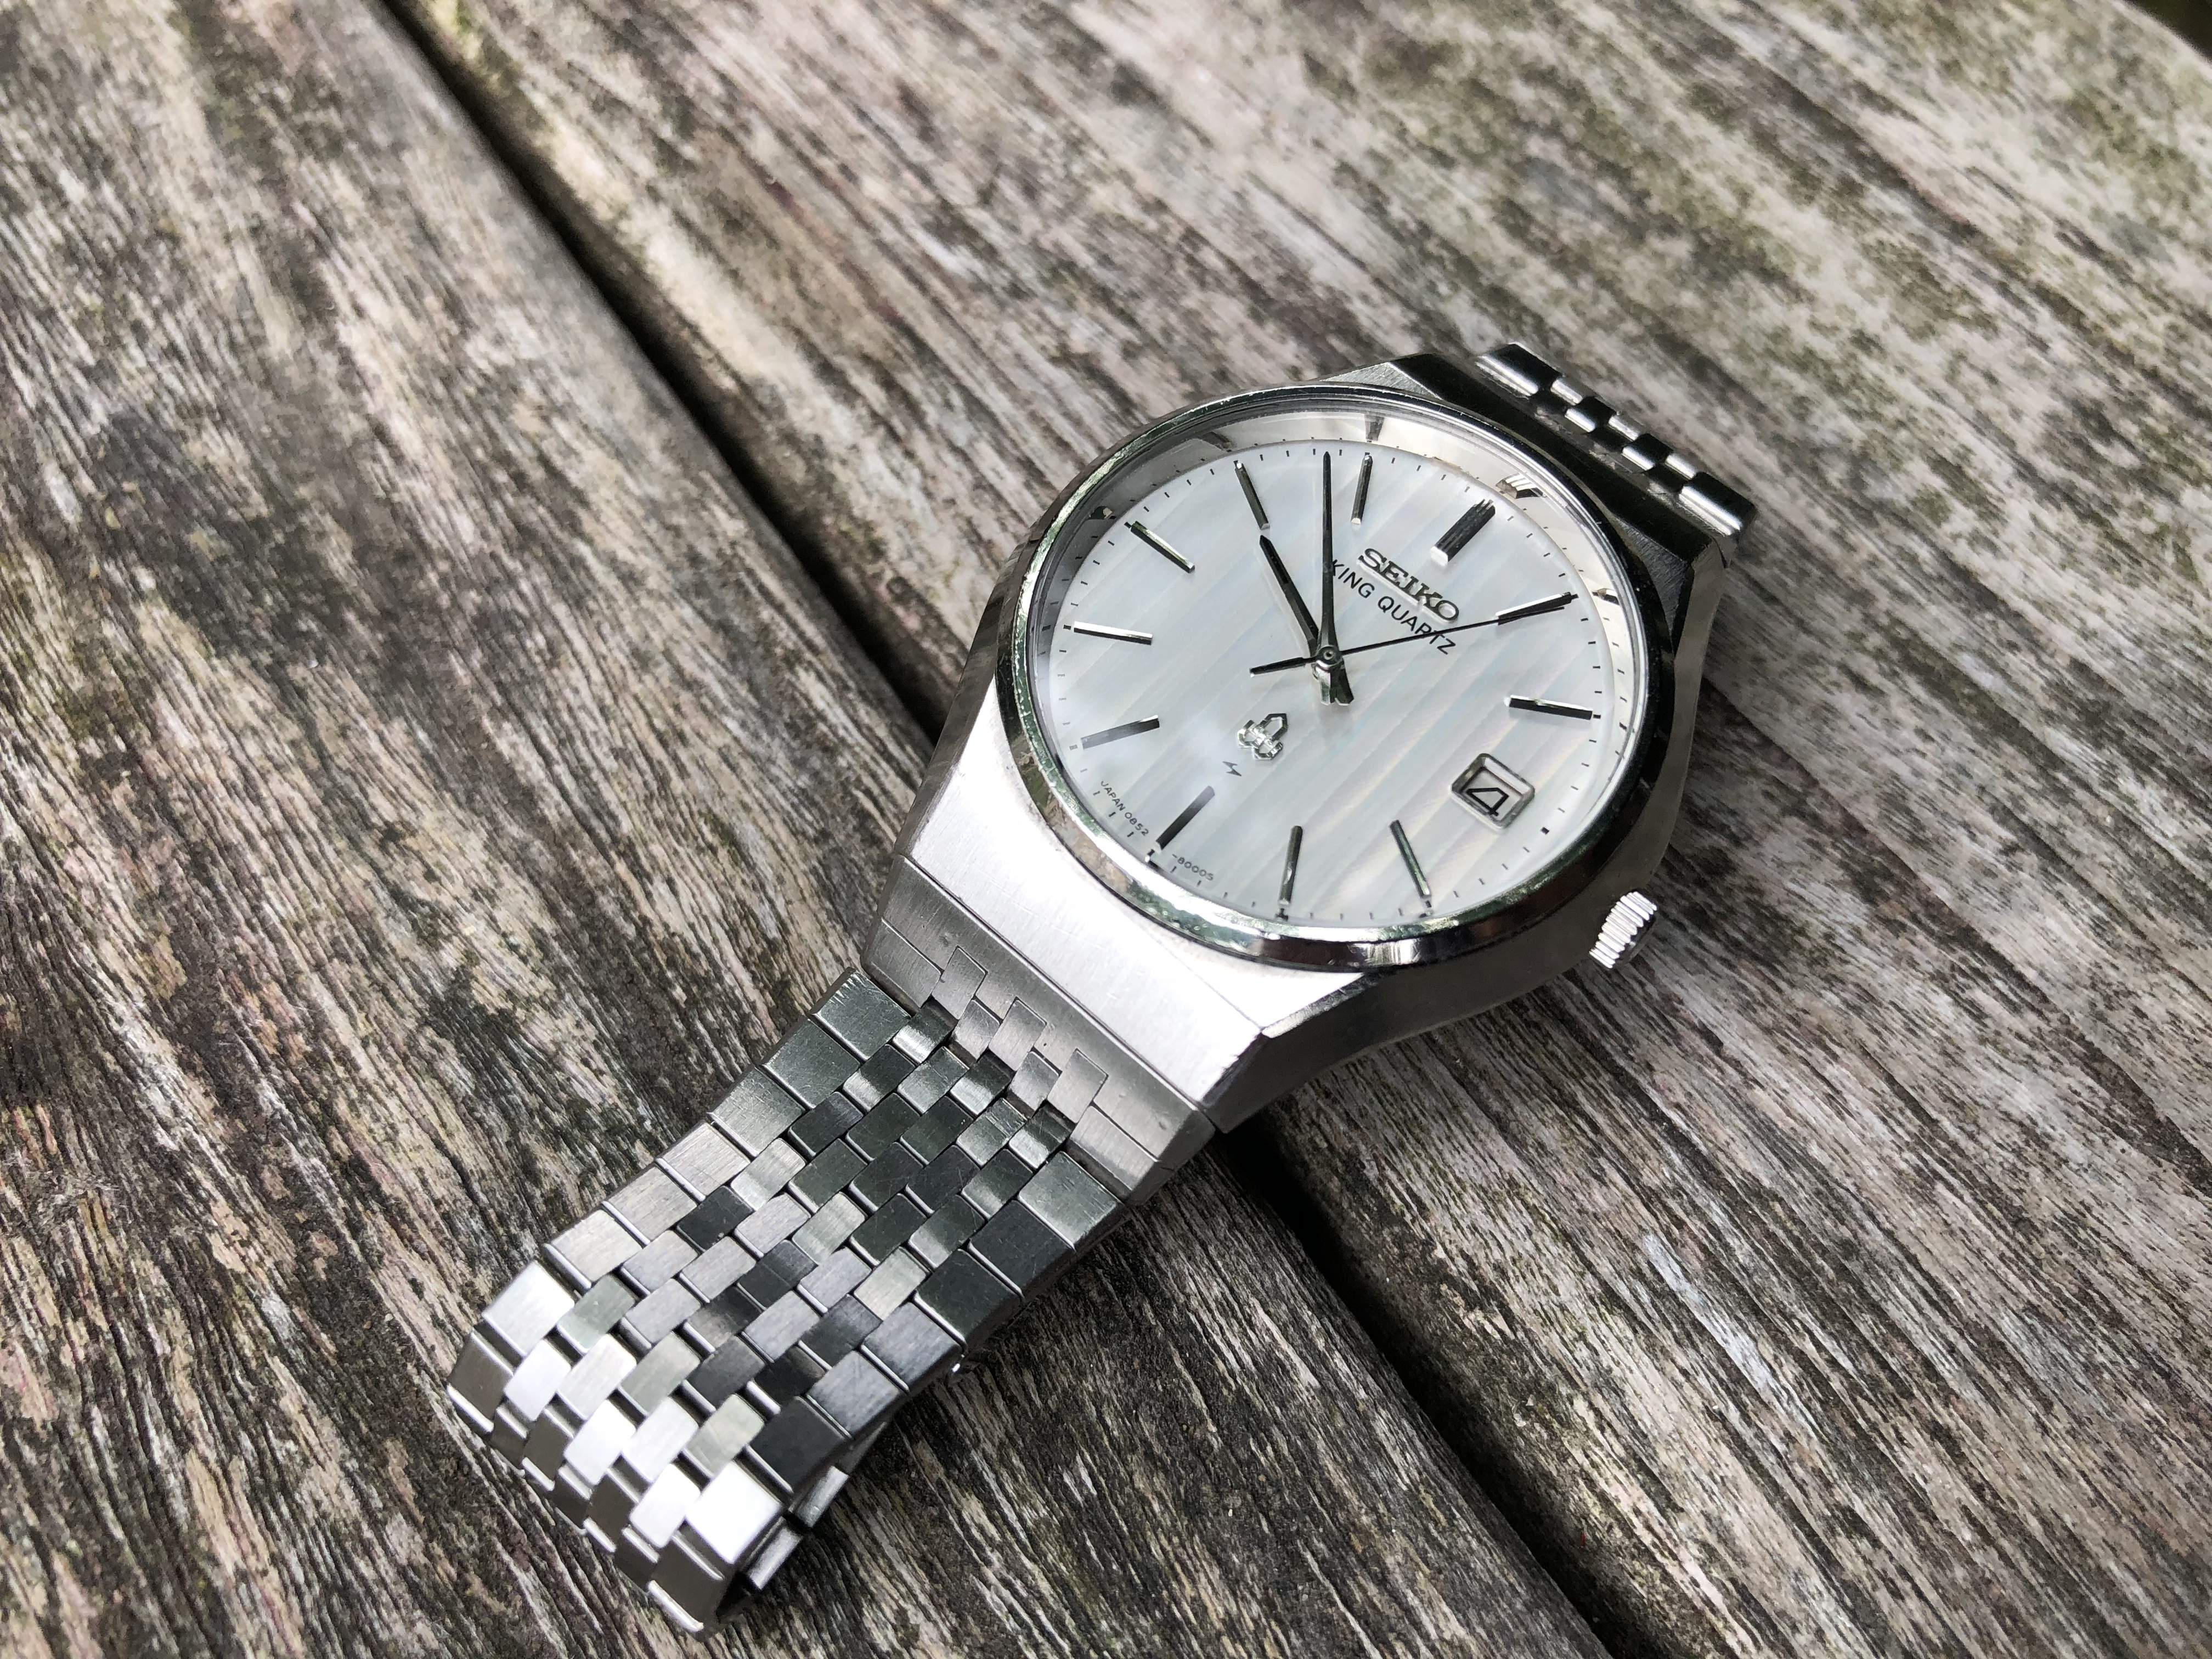 Seiko King Quartz 0852-8000 (Sold)